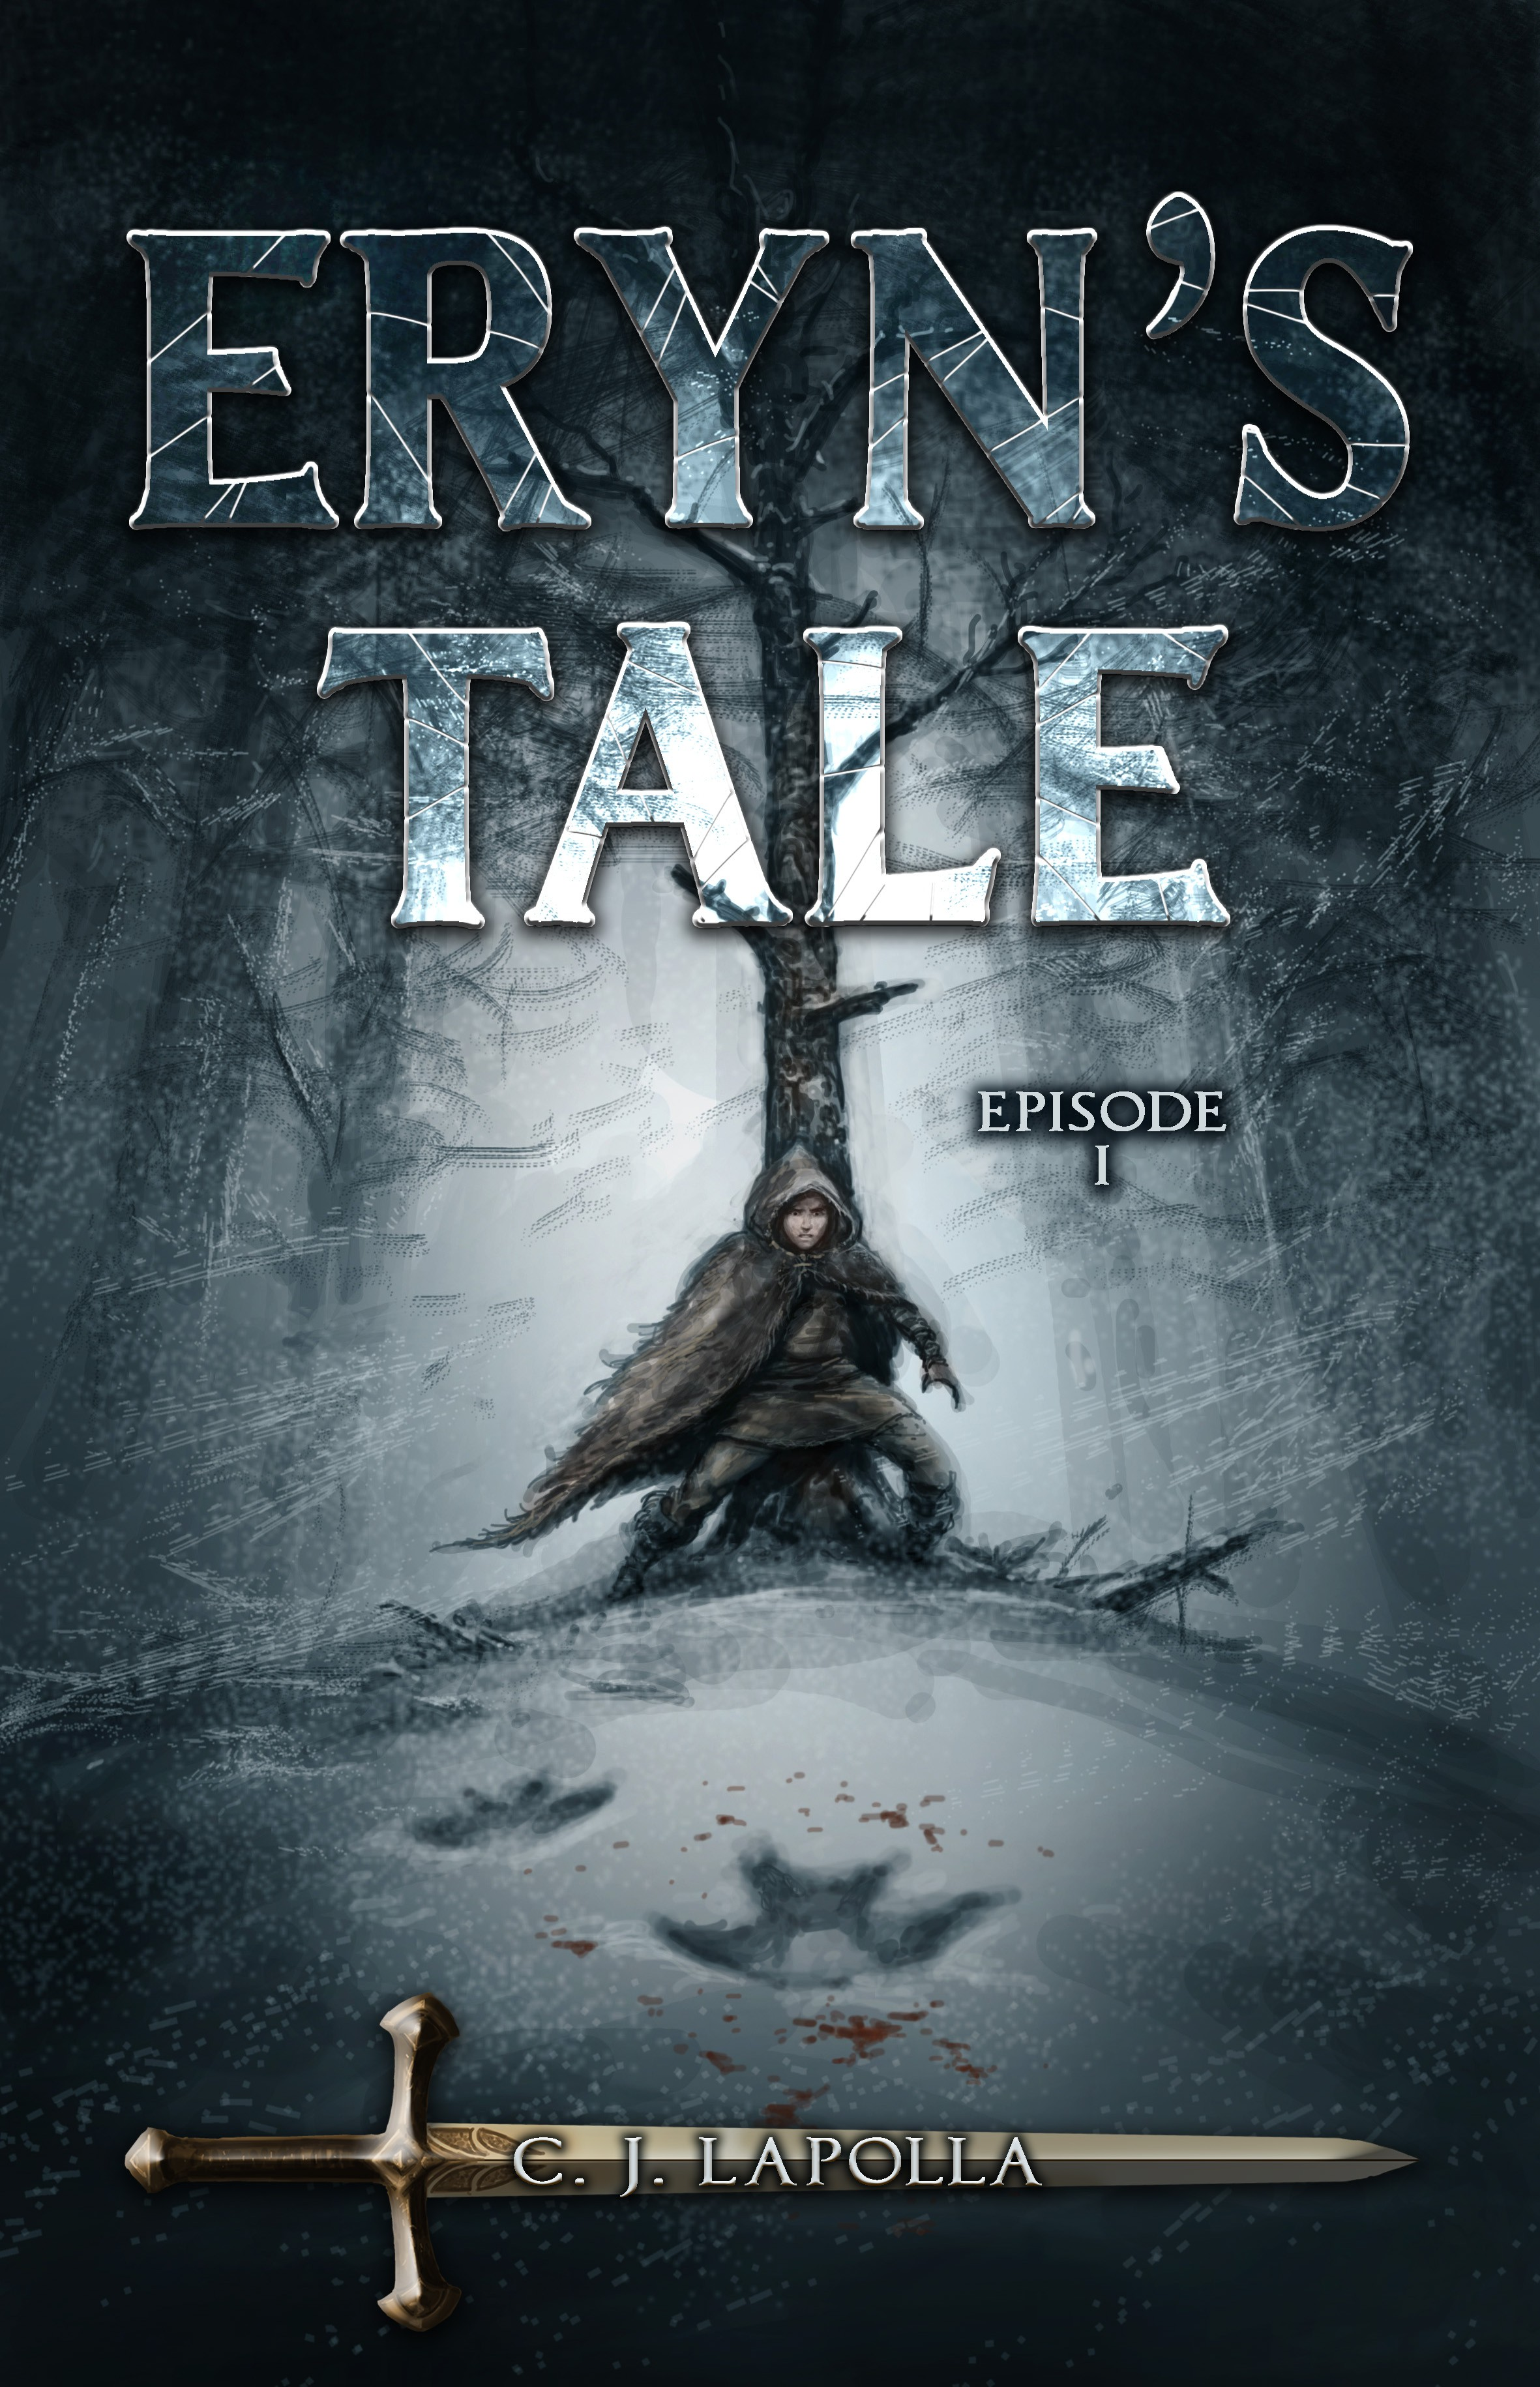 Create an eBook cover for a viking-like fantasy novel featuring an icy landscape